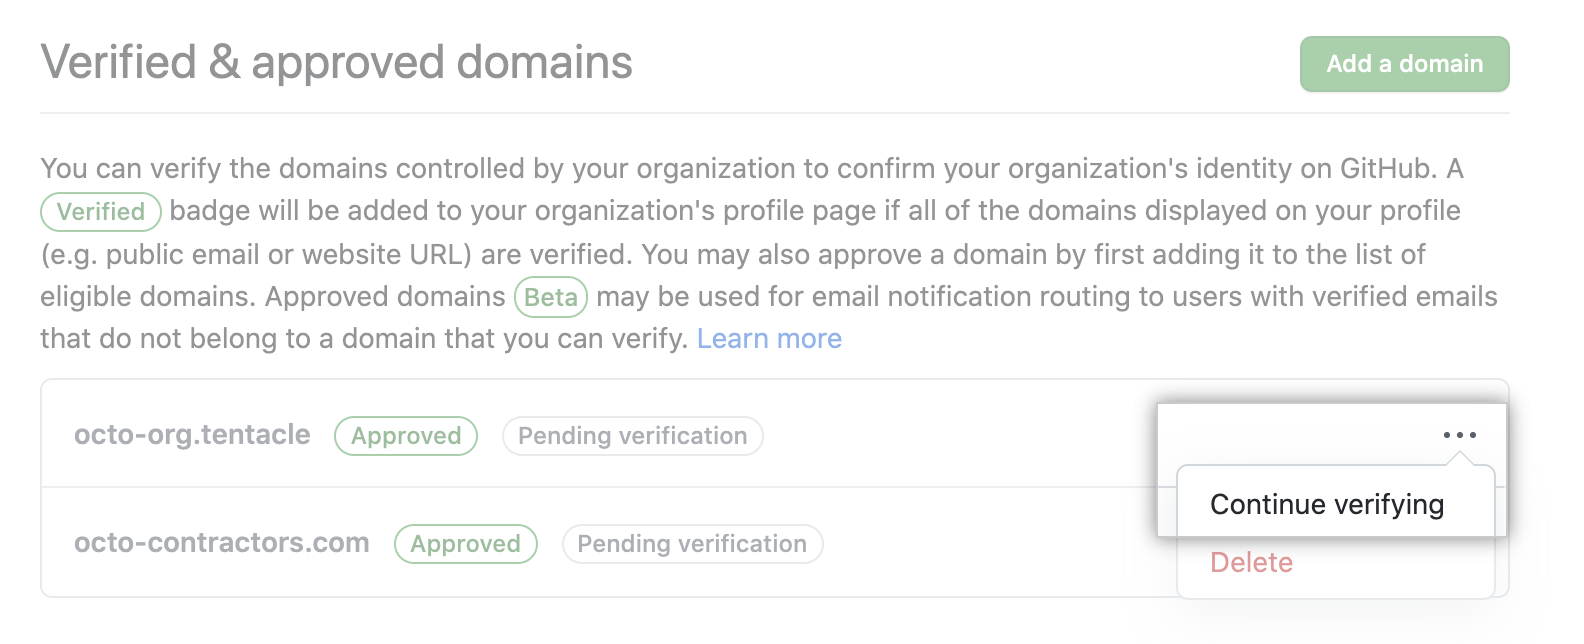 Continue verifying domain button